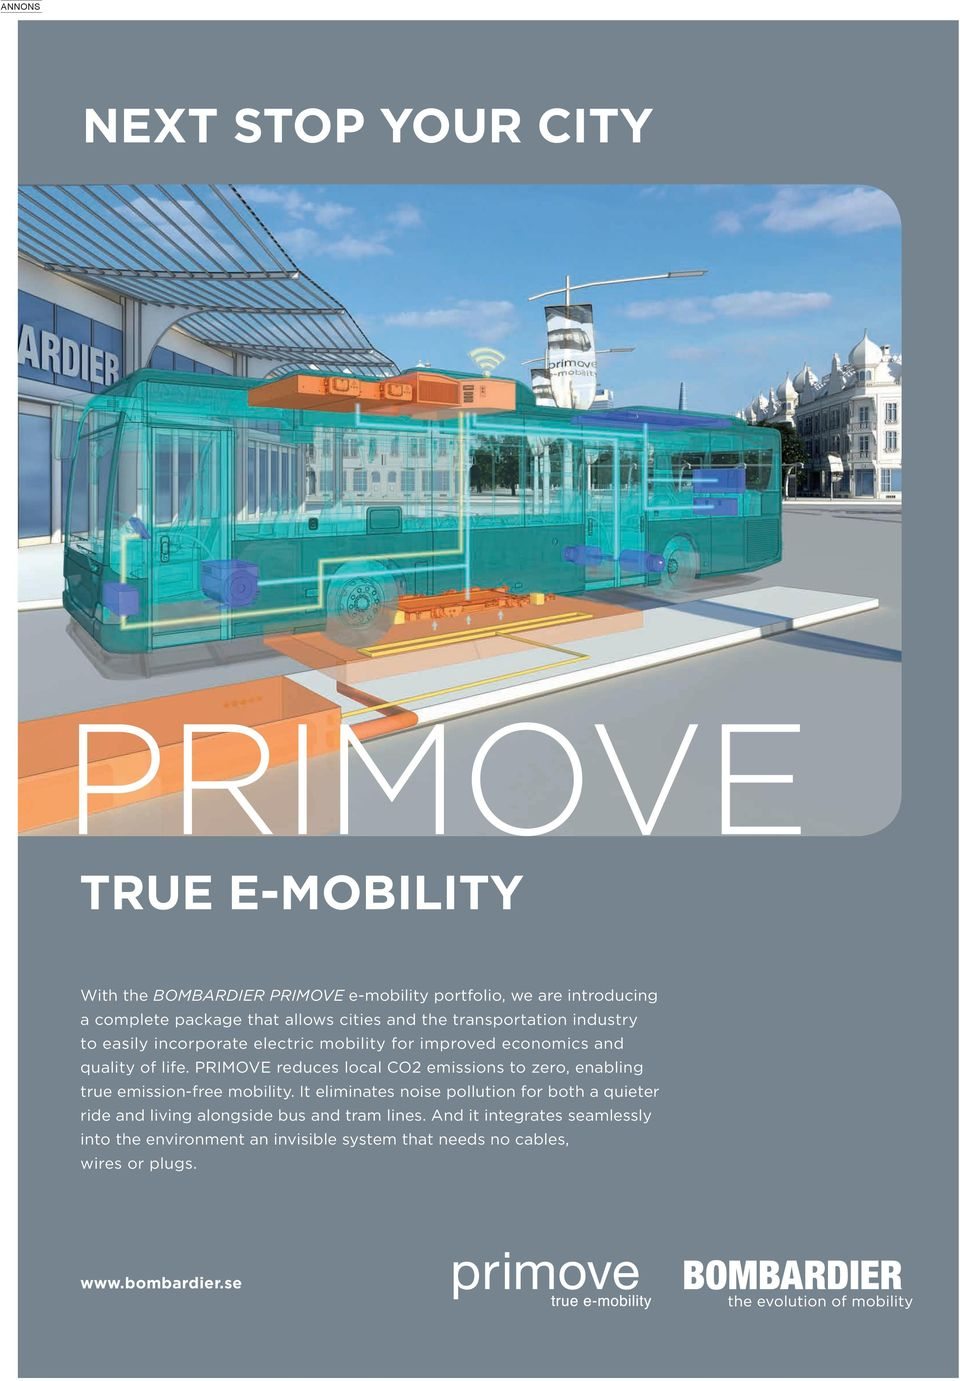 PRIMOVE reduces local CO2 emissions to zero, enabling true emission-free mobility.